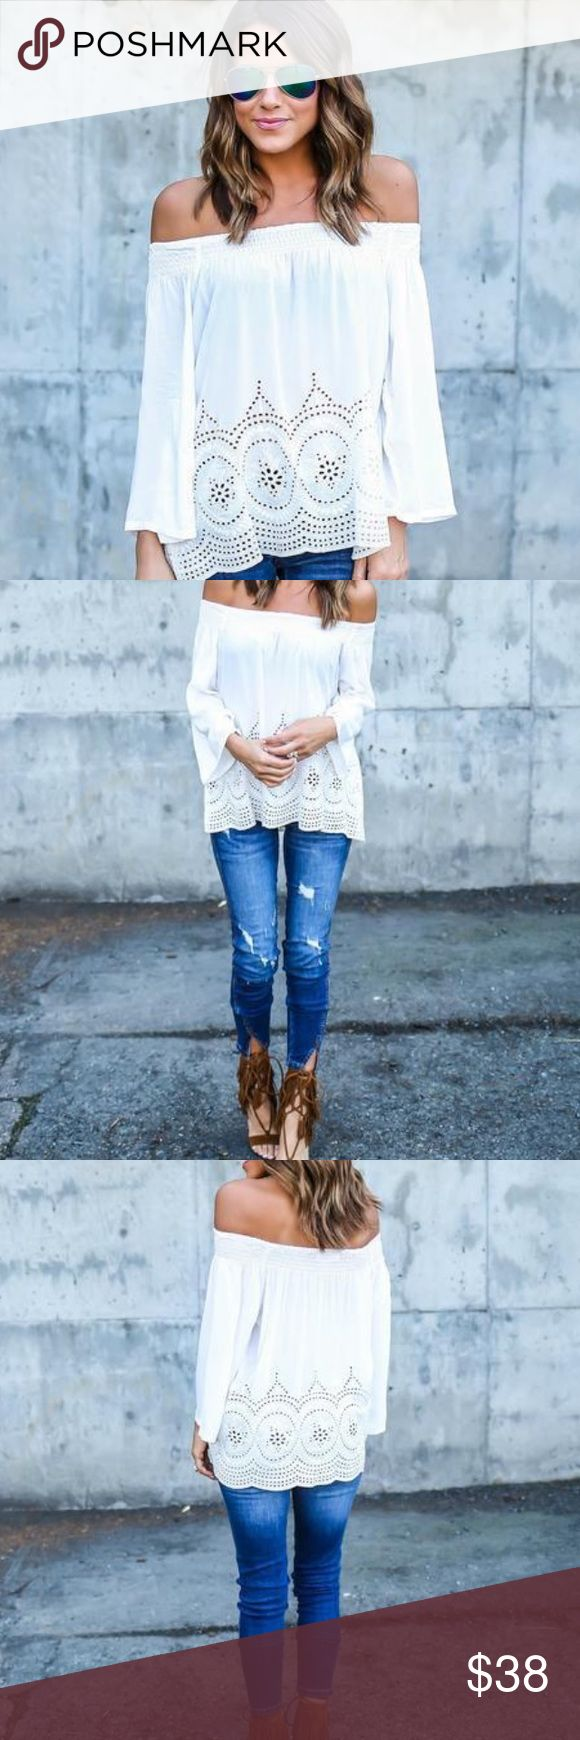 Vici Collection Ulysses Top in White Brand new with tags! Selling because I received one as a gift as well. Sold out on their website! Most popular instagram top. Adorable for spring and summer vici Tops Blouses